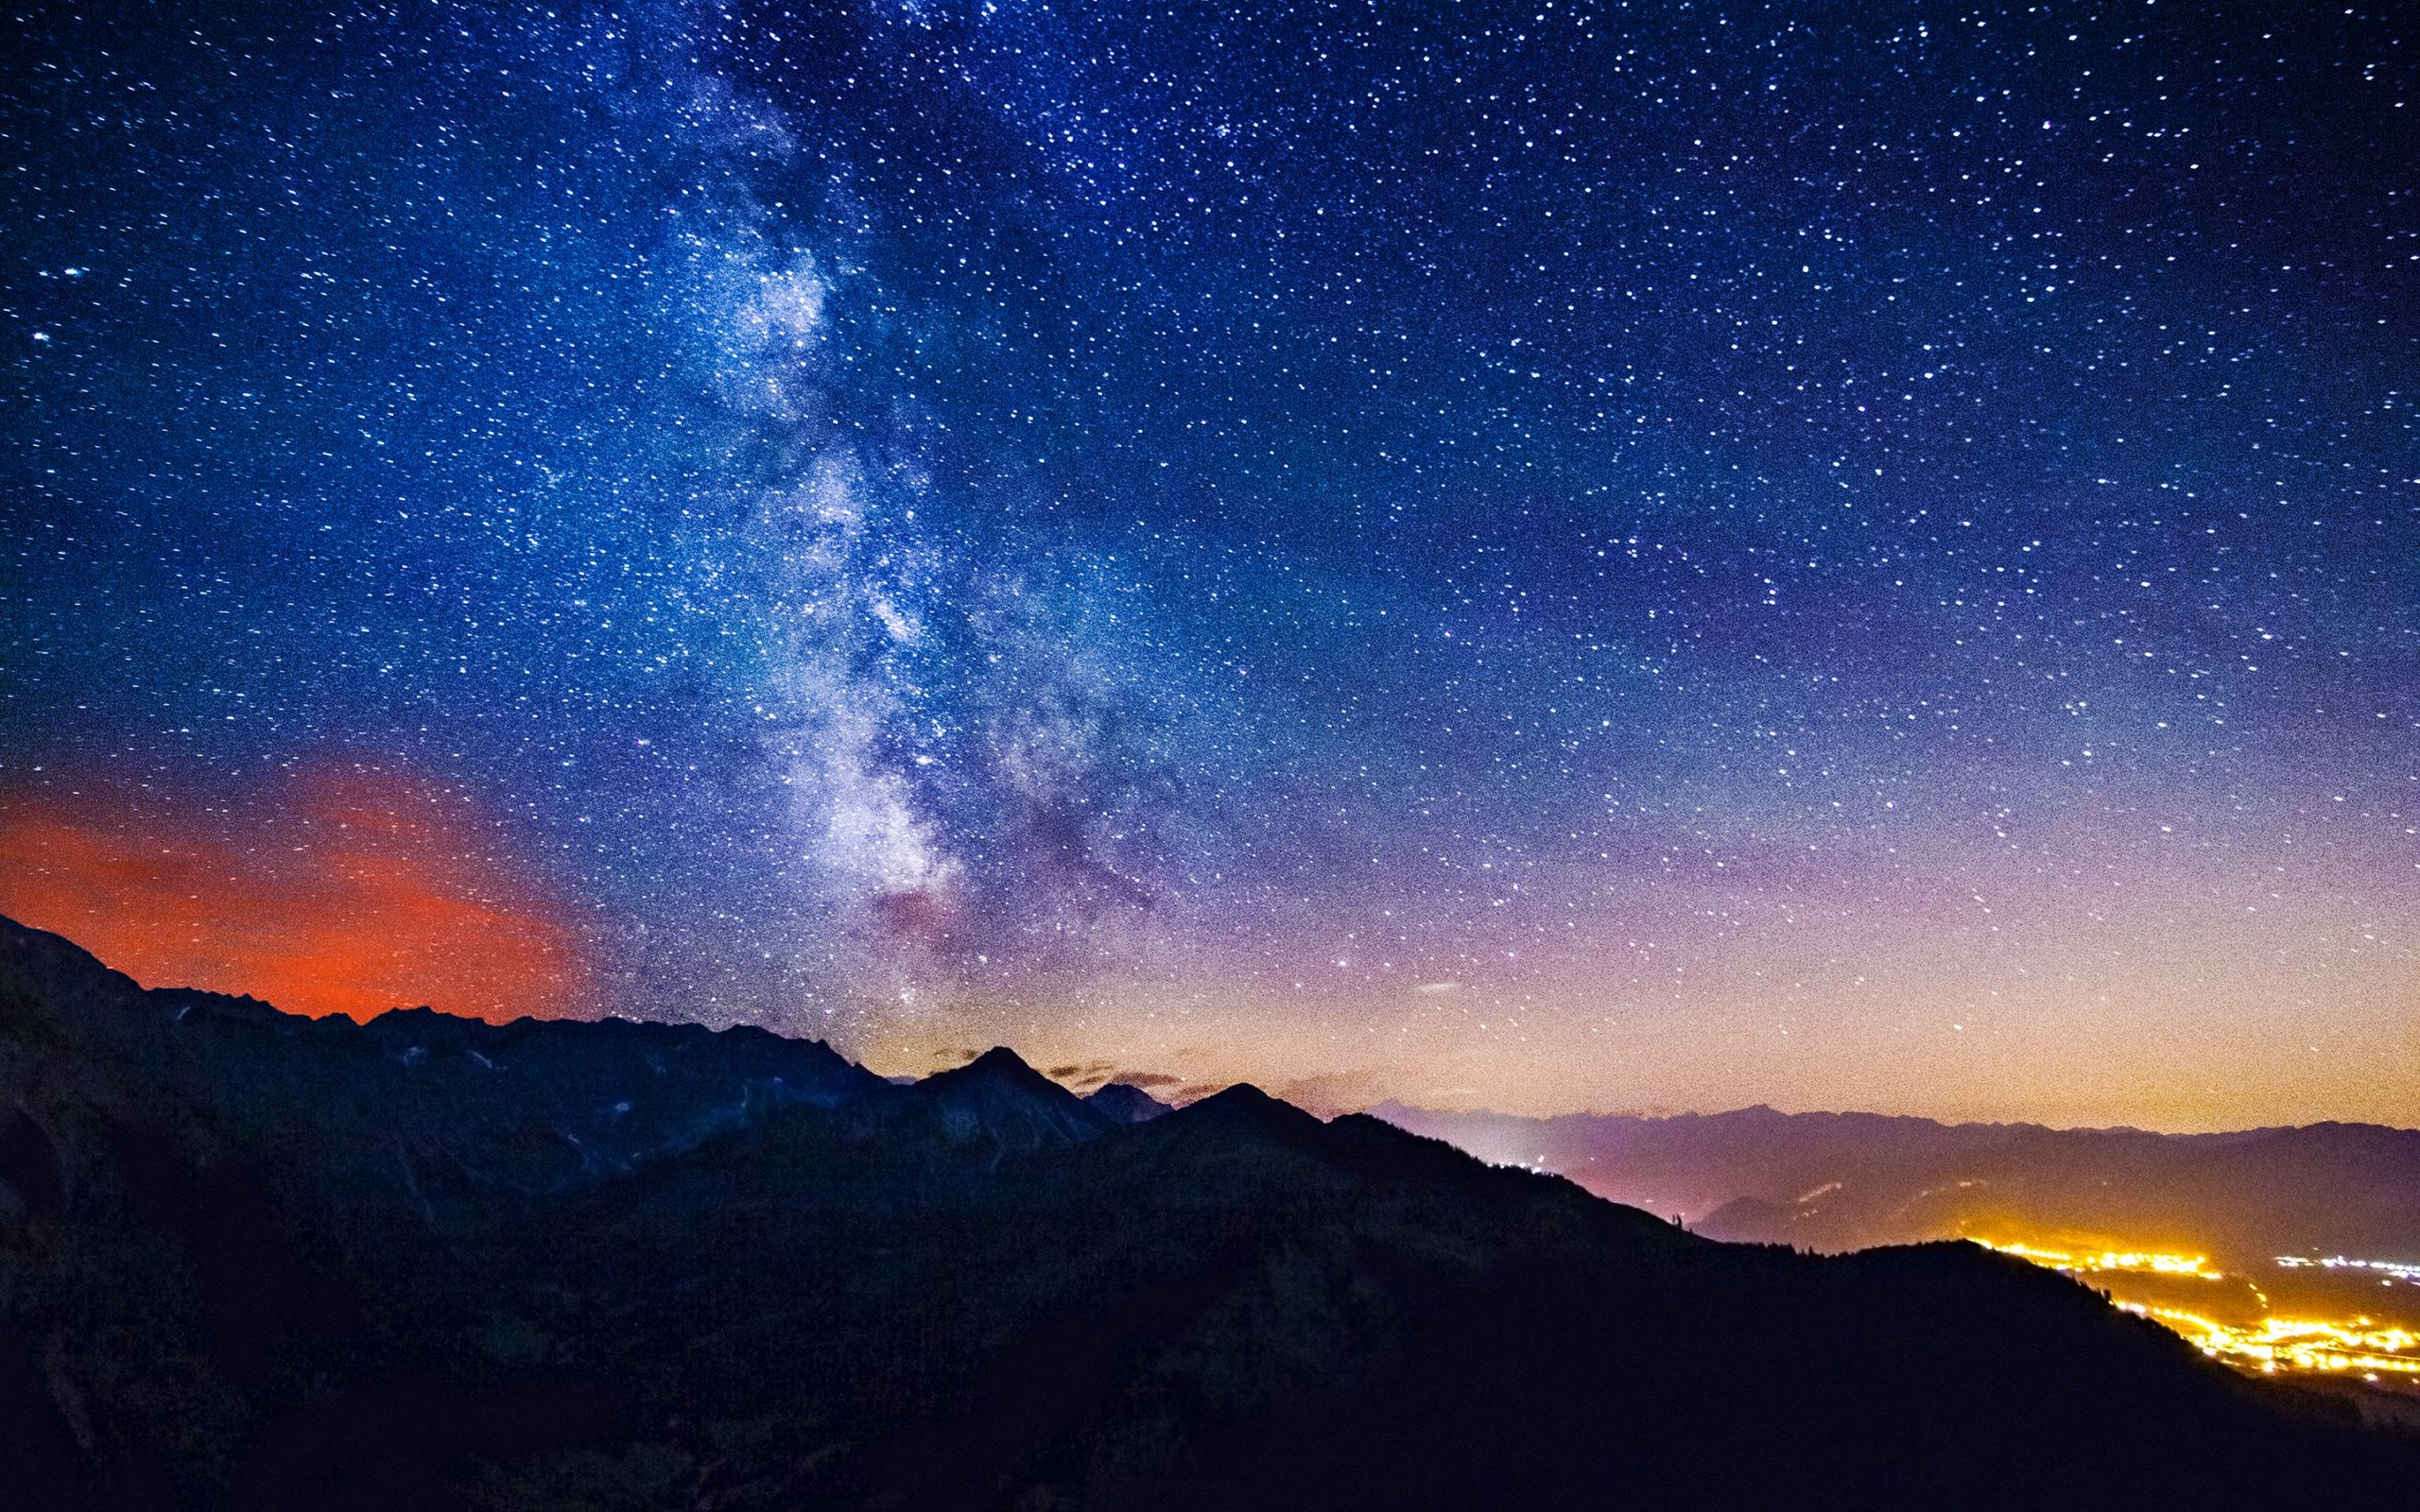 Milky Way Stars Over Mountains Fondos De Escritorio Night Sky Wallpaper Star Wallpaper Beautiful Wallpapers